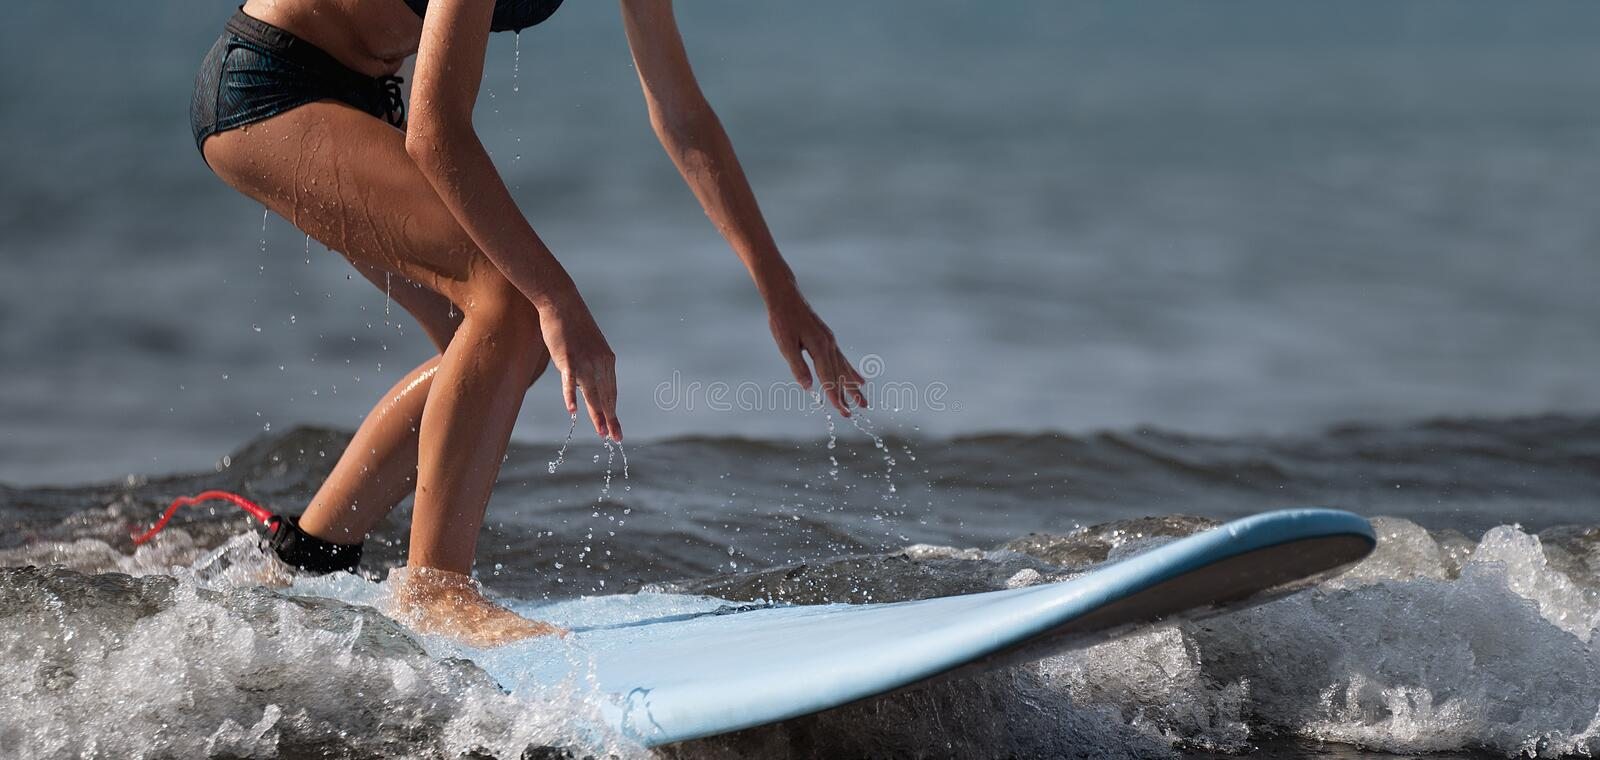 A woman learns to surf on the wave stock images